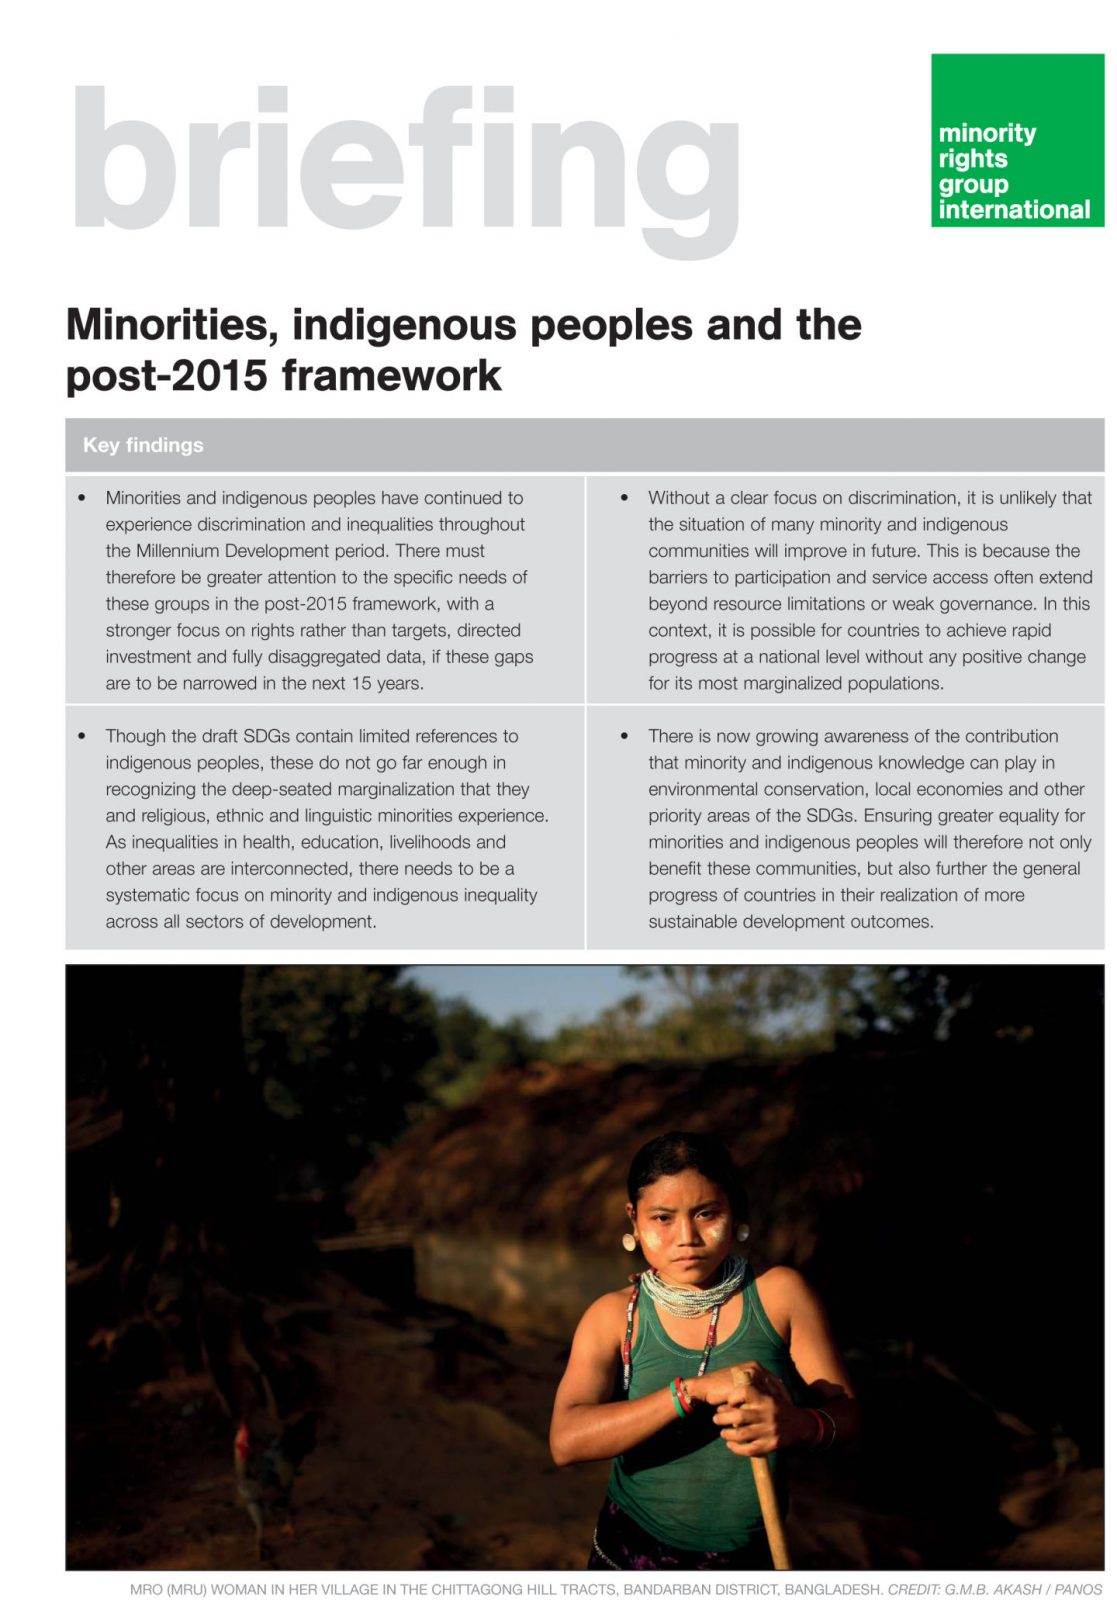 Minorities, indigenous peoples and the post-2015 framework